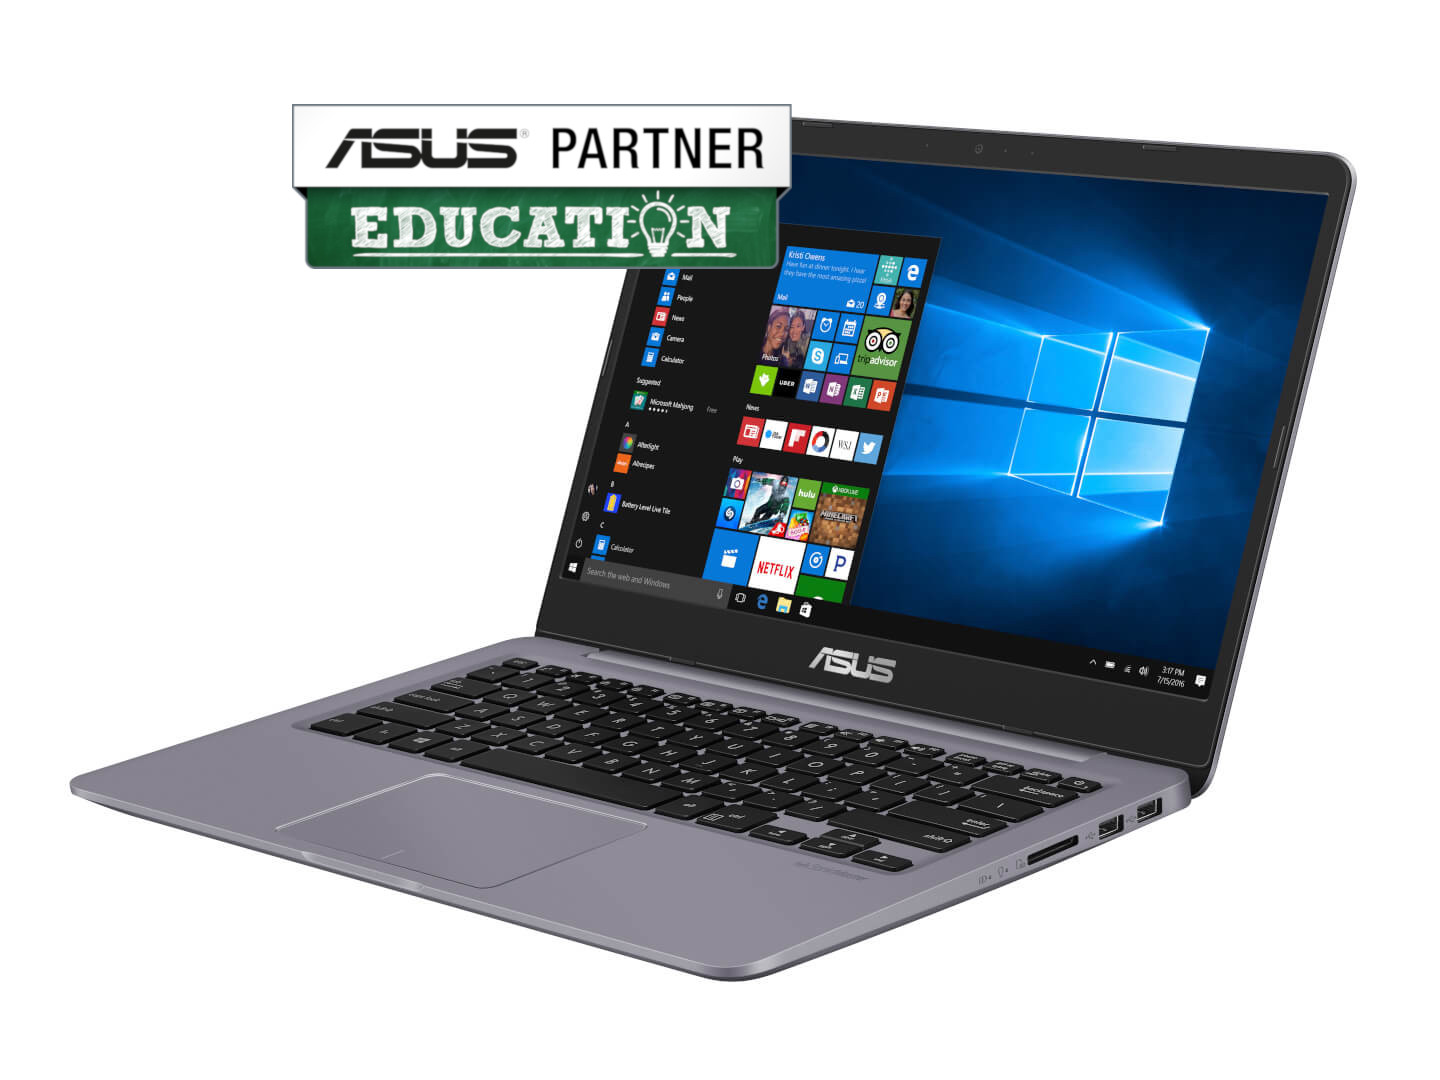 Notebook Köln Asus Vivobook X411ua Education Notebook Köln